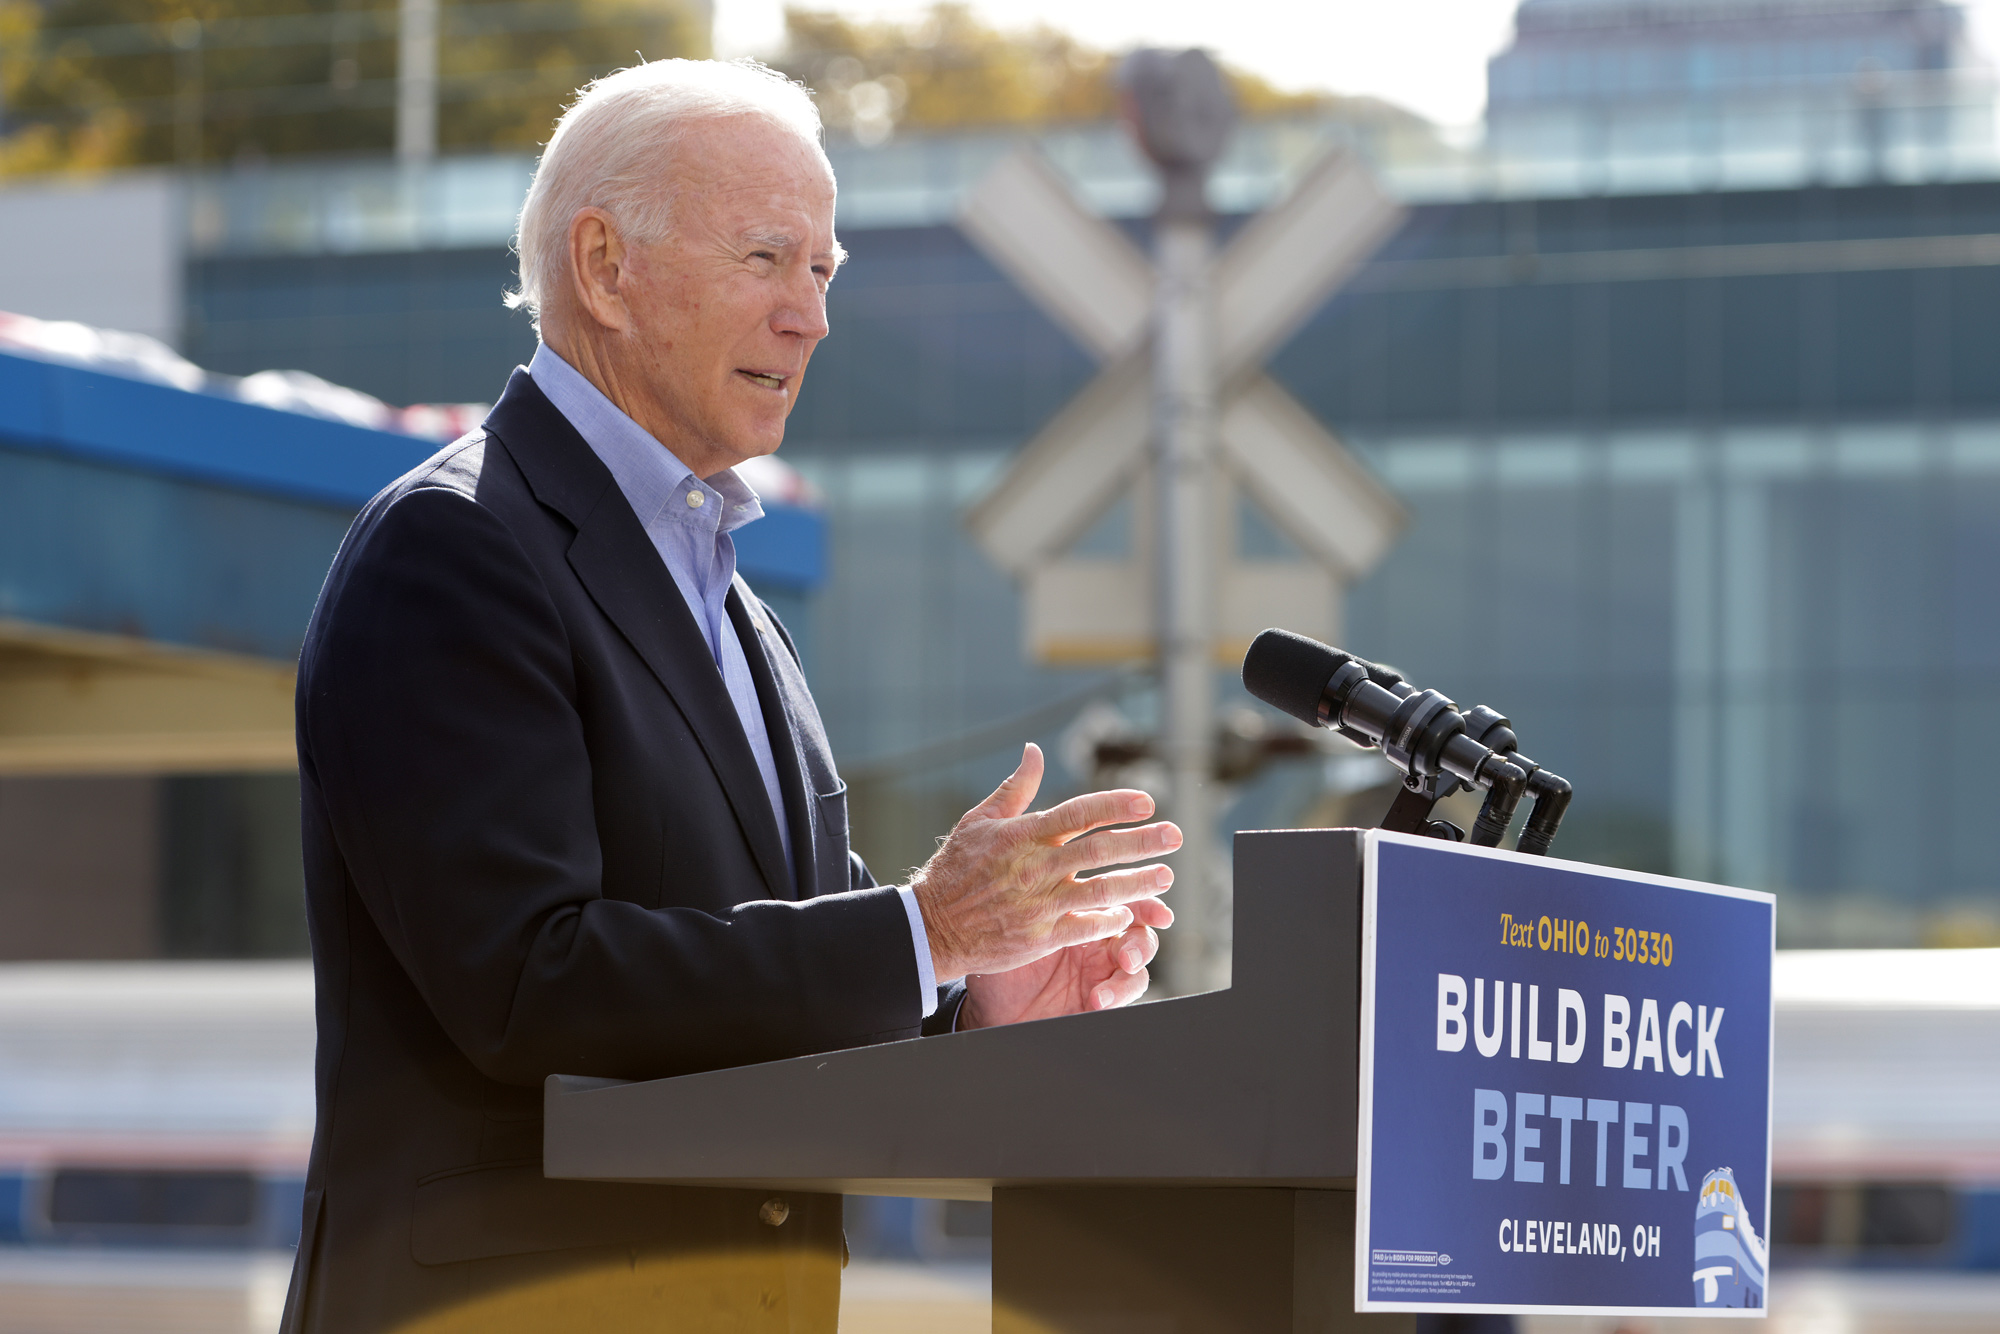 Democratic U.S. presidential nominee Joe Biden speaks during a campaign event to launch a train campaign tour at Cleveland Amtrak Station September 30 in Cleveland, Ohio.